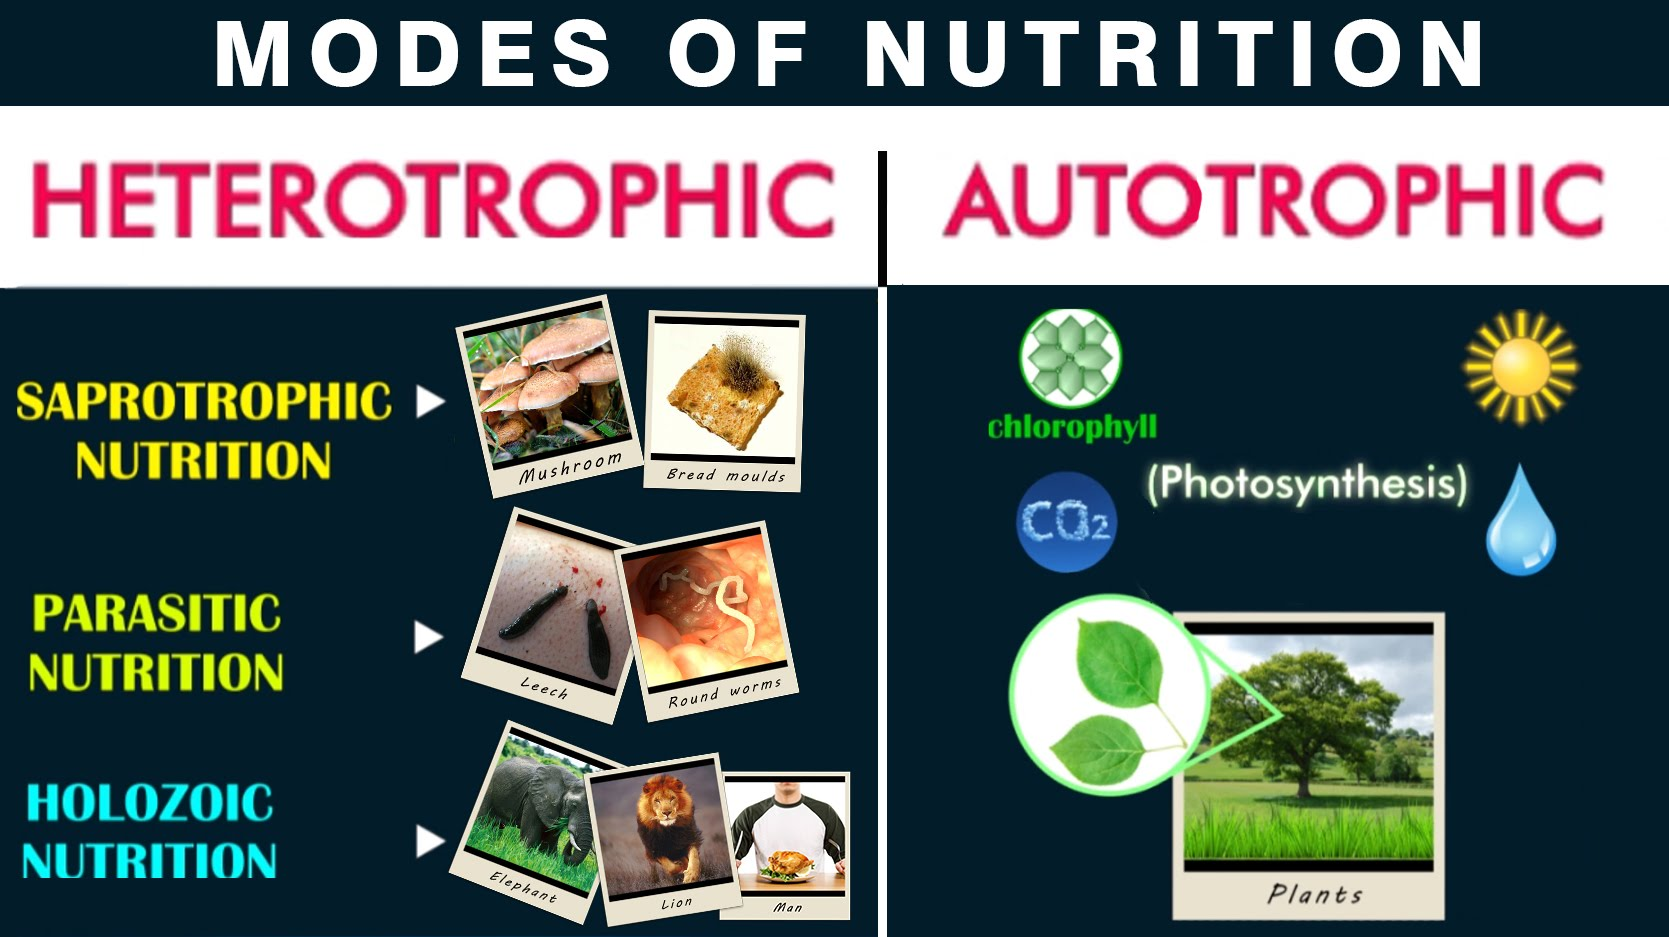 Nutrition and mode of nutrition - Online Biology Notes